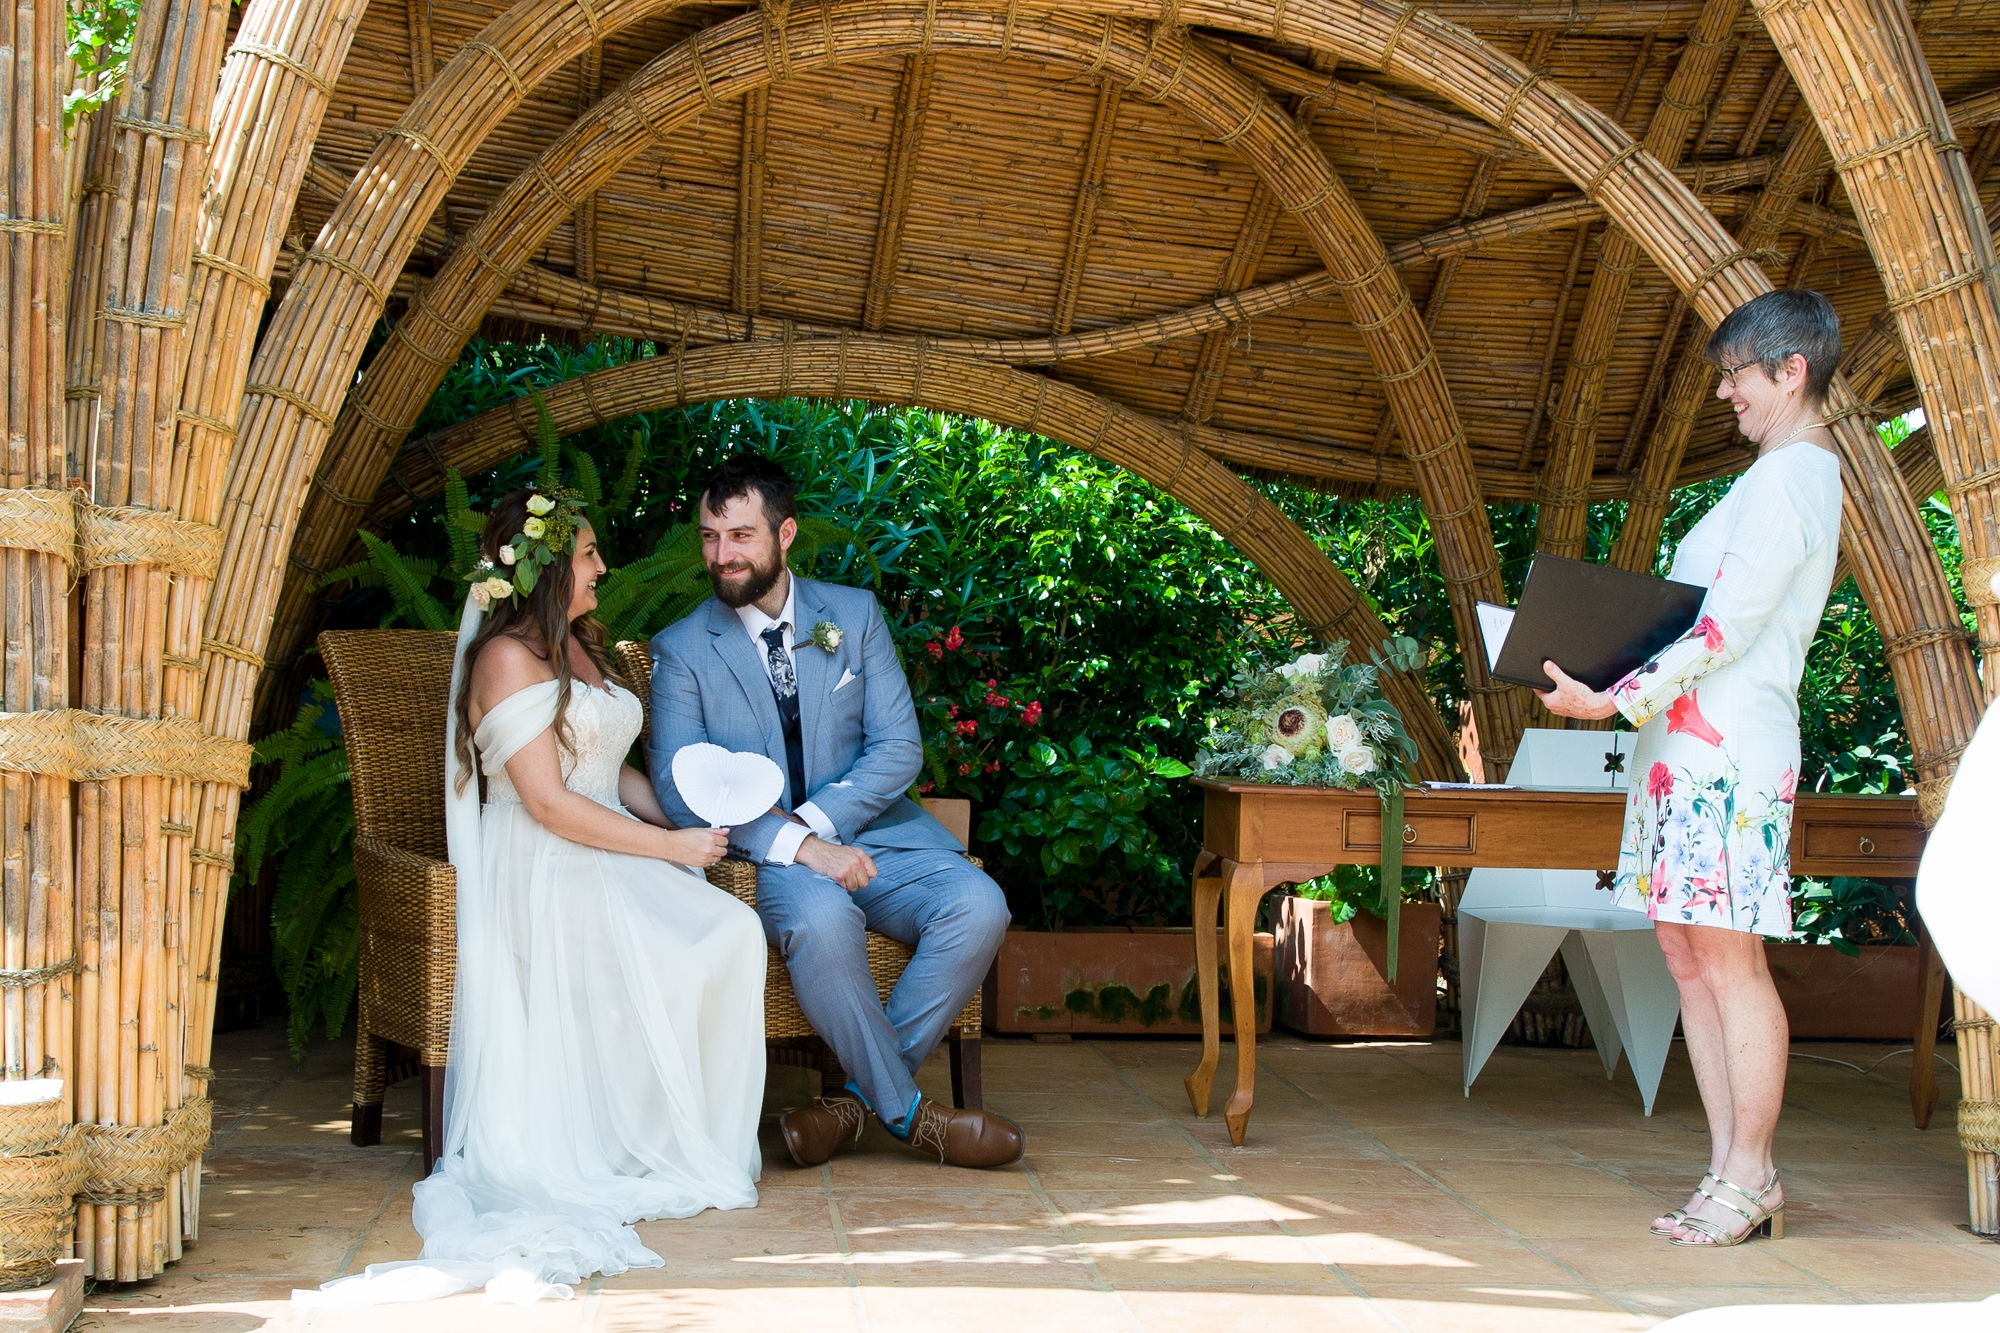 bride and groom sit looking at each other at destination wedding at Hotel Les Rotes in Spain